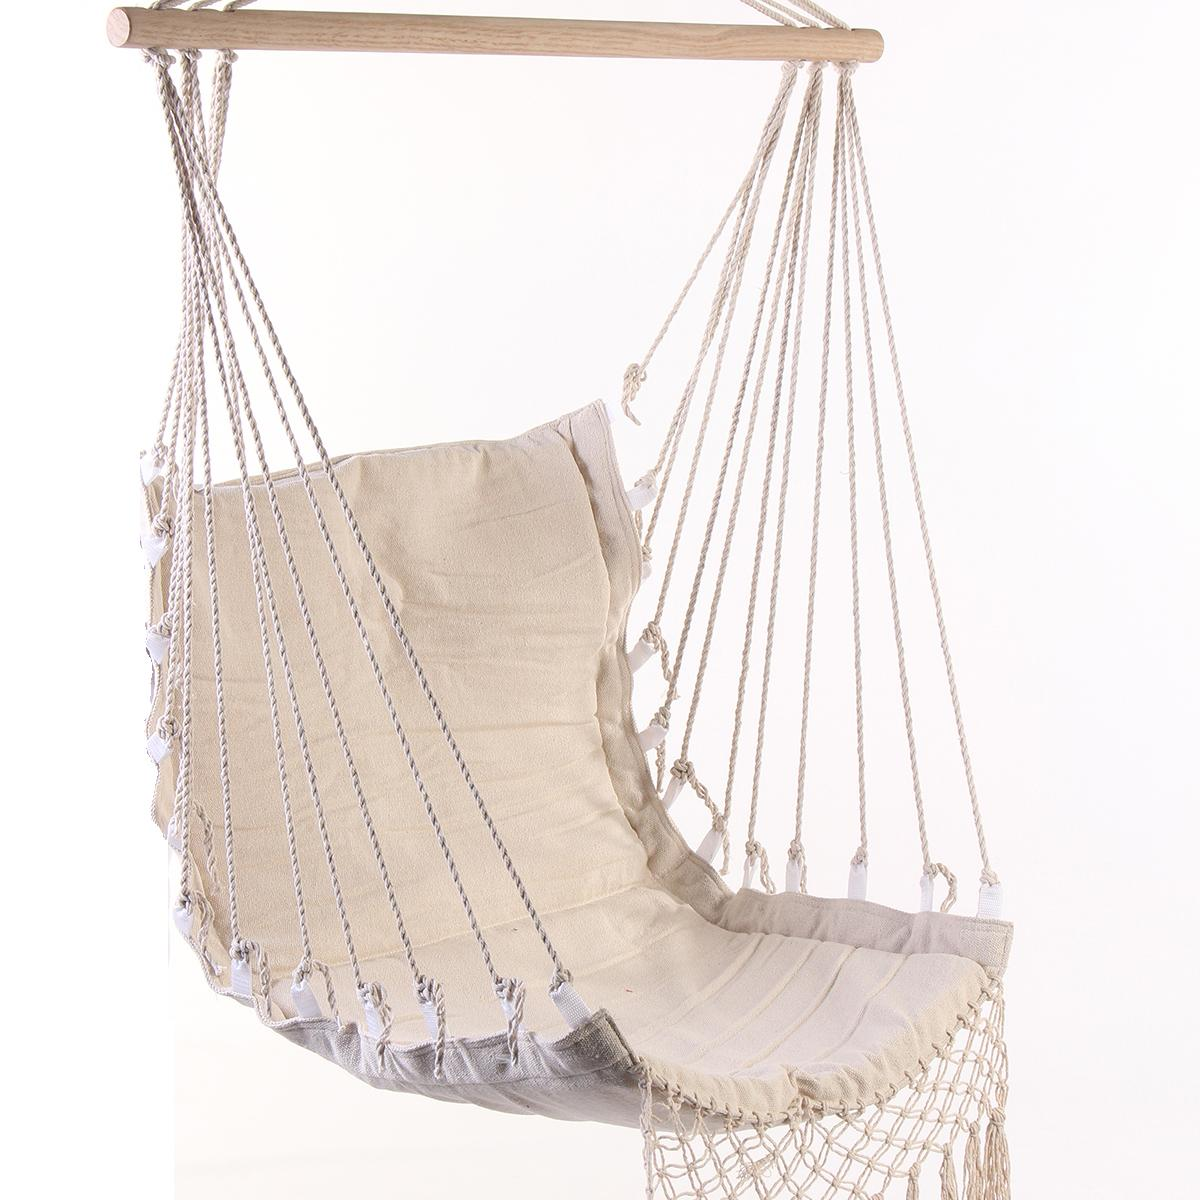 Nordic Style Deluxe Hammock Outdoor Indoor Garden Dormitory Bedroom Hanging  Chair For Child Adult Swinging Single Safety Chair Hammocks Cheap Hammocks  ...